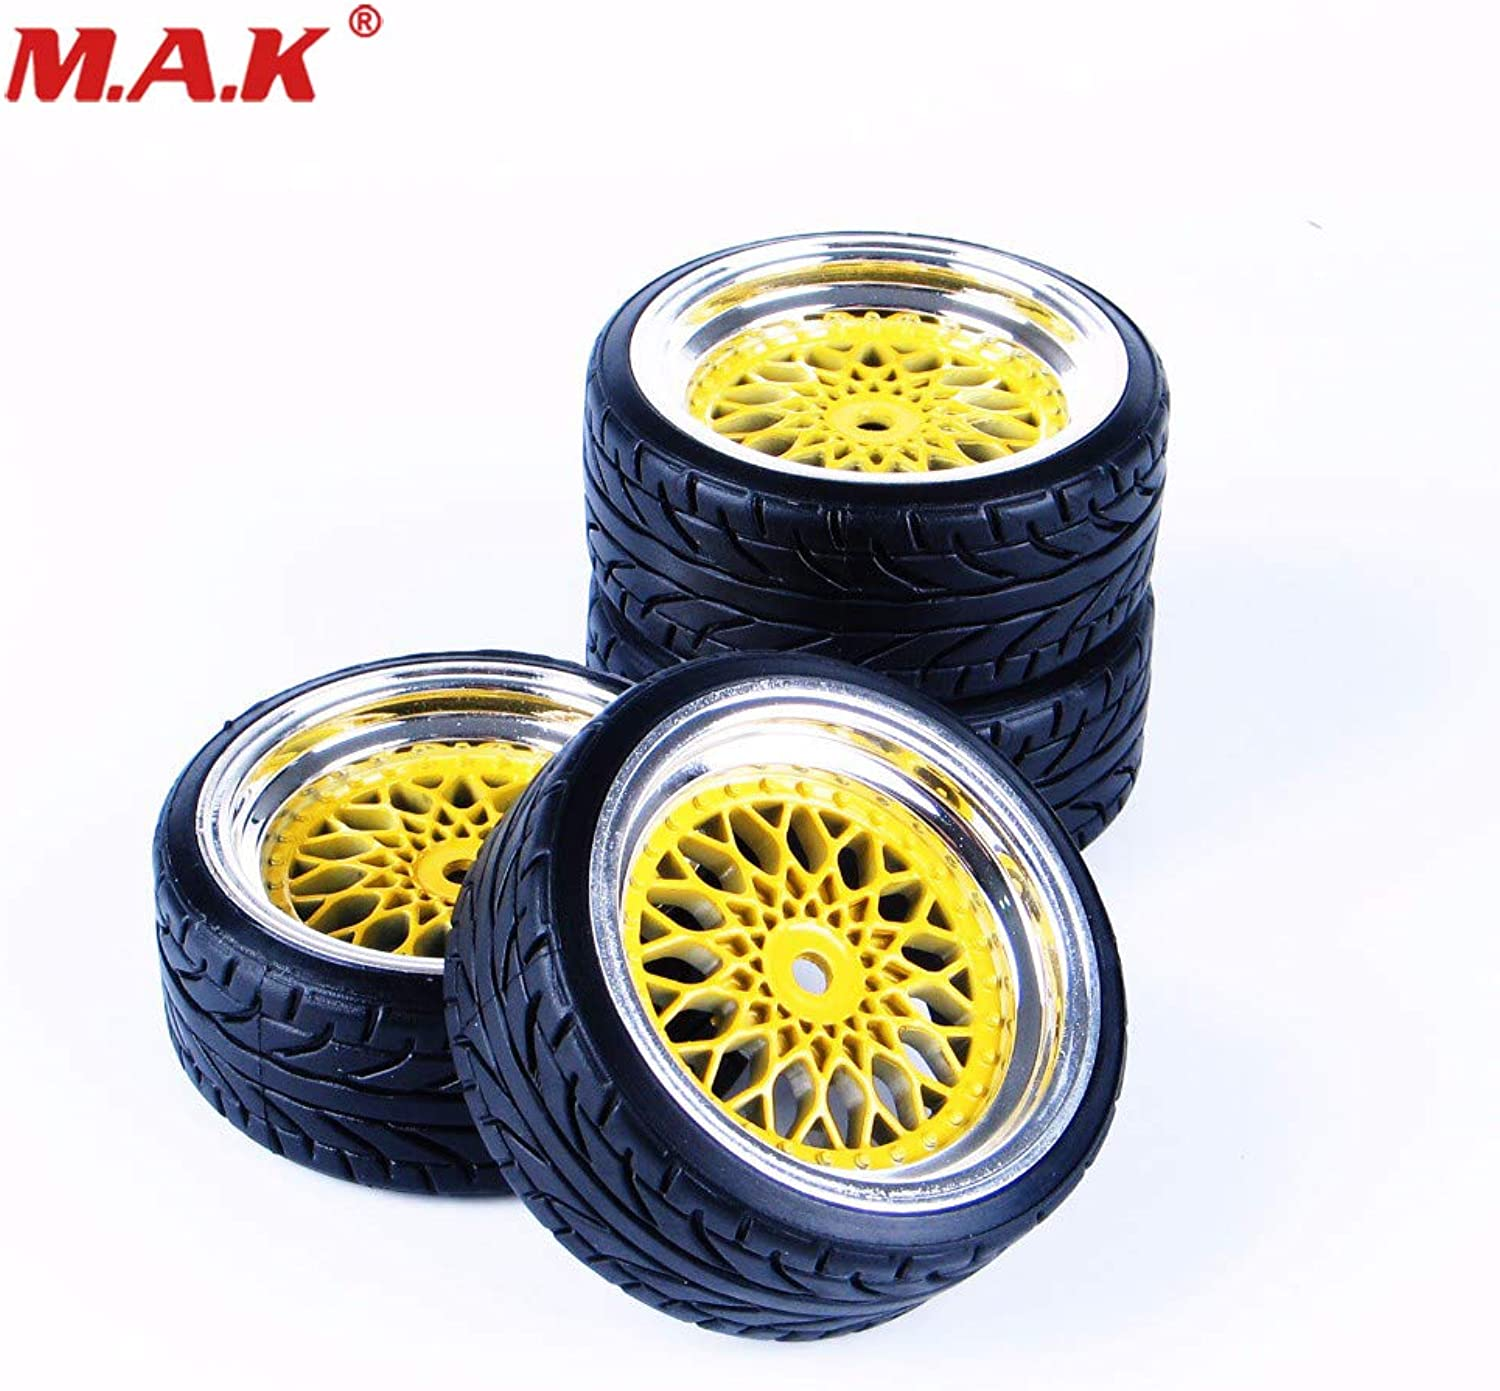 Generic On Road 1 10 Car 4 Pcs Set RC Flat Drift Tires Tyres Wheel Rim for 1 10 HSP HPI Drift Car Model Toys Set Accessory